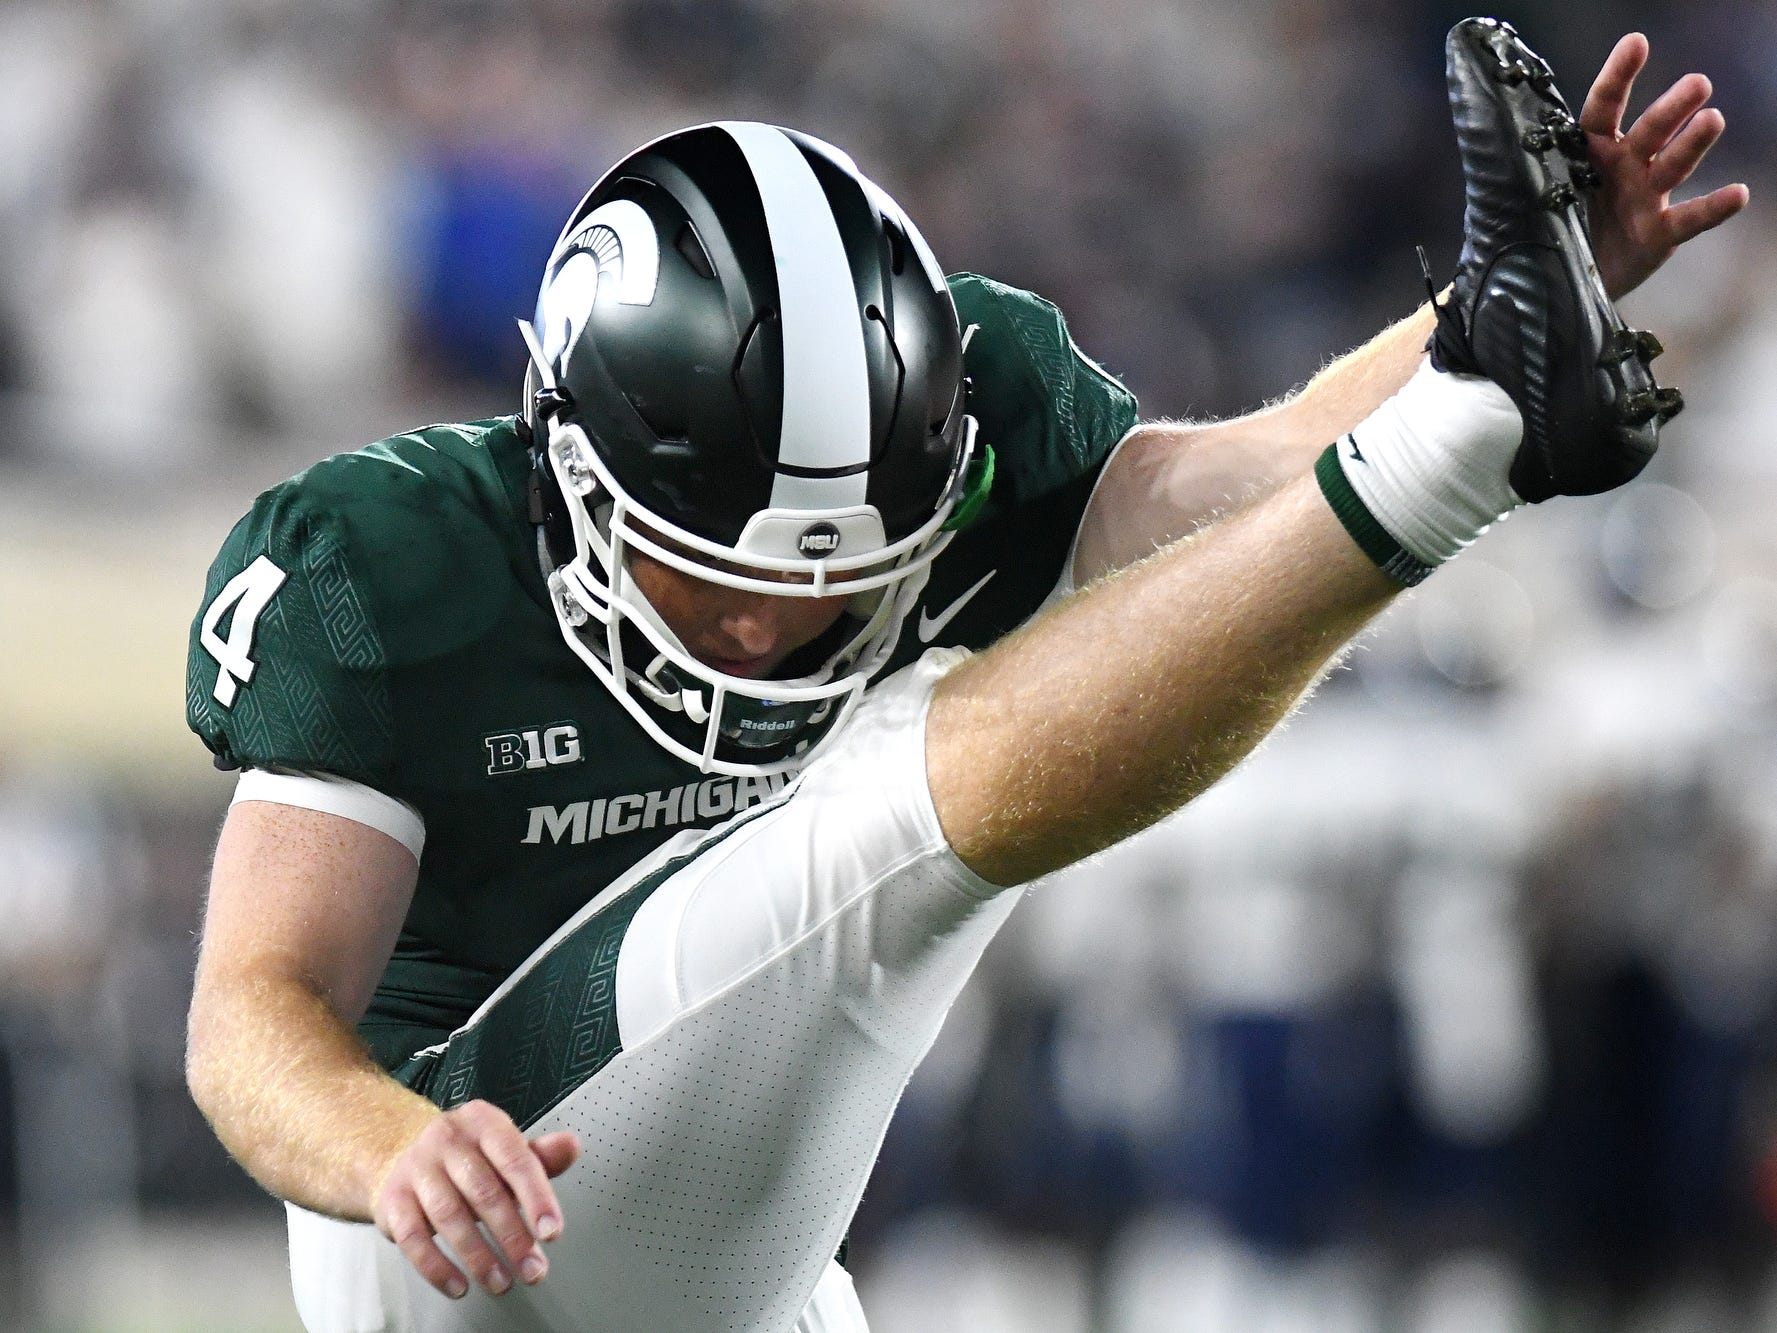 Michigan State's Matt Coghlin warms up his leg during a timeout in the fourth quarter on Friday, Aug. 31, 2018, at Spartan Stadium in East Lansing.